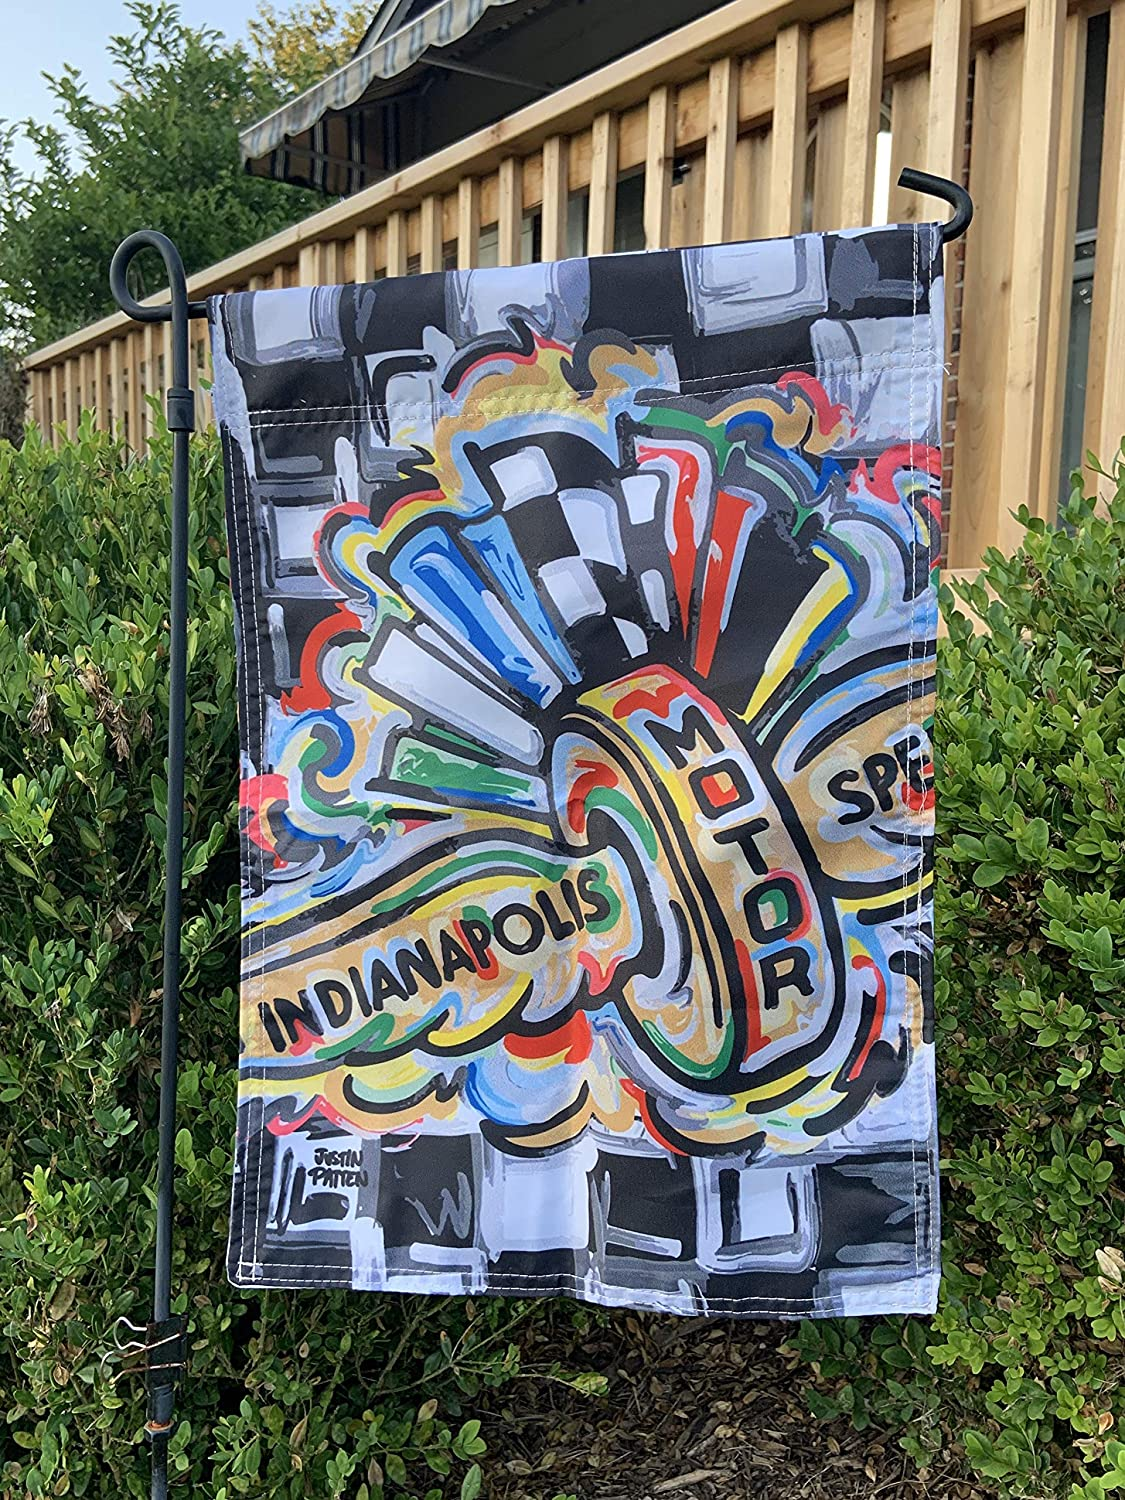 "Cherrytees Personalized Garden Flag-Indy 500 Garden Flag. (18""x12"") Artist Justin Patten Racing Indianapolis Shipping Friday Great Gift -Perfect"